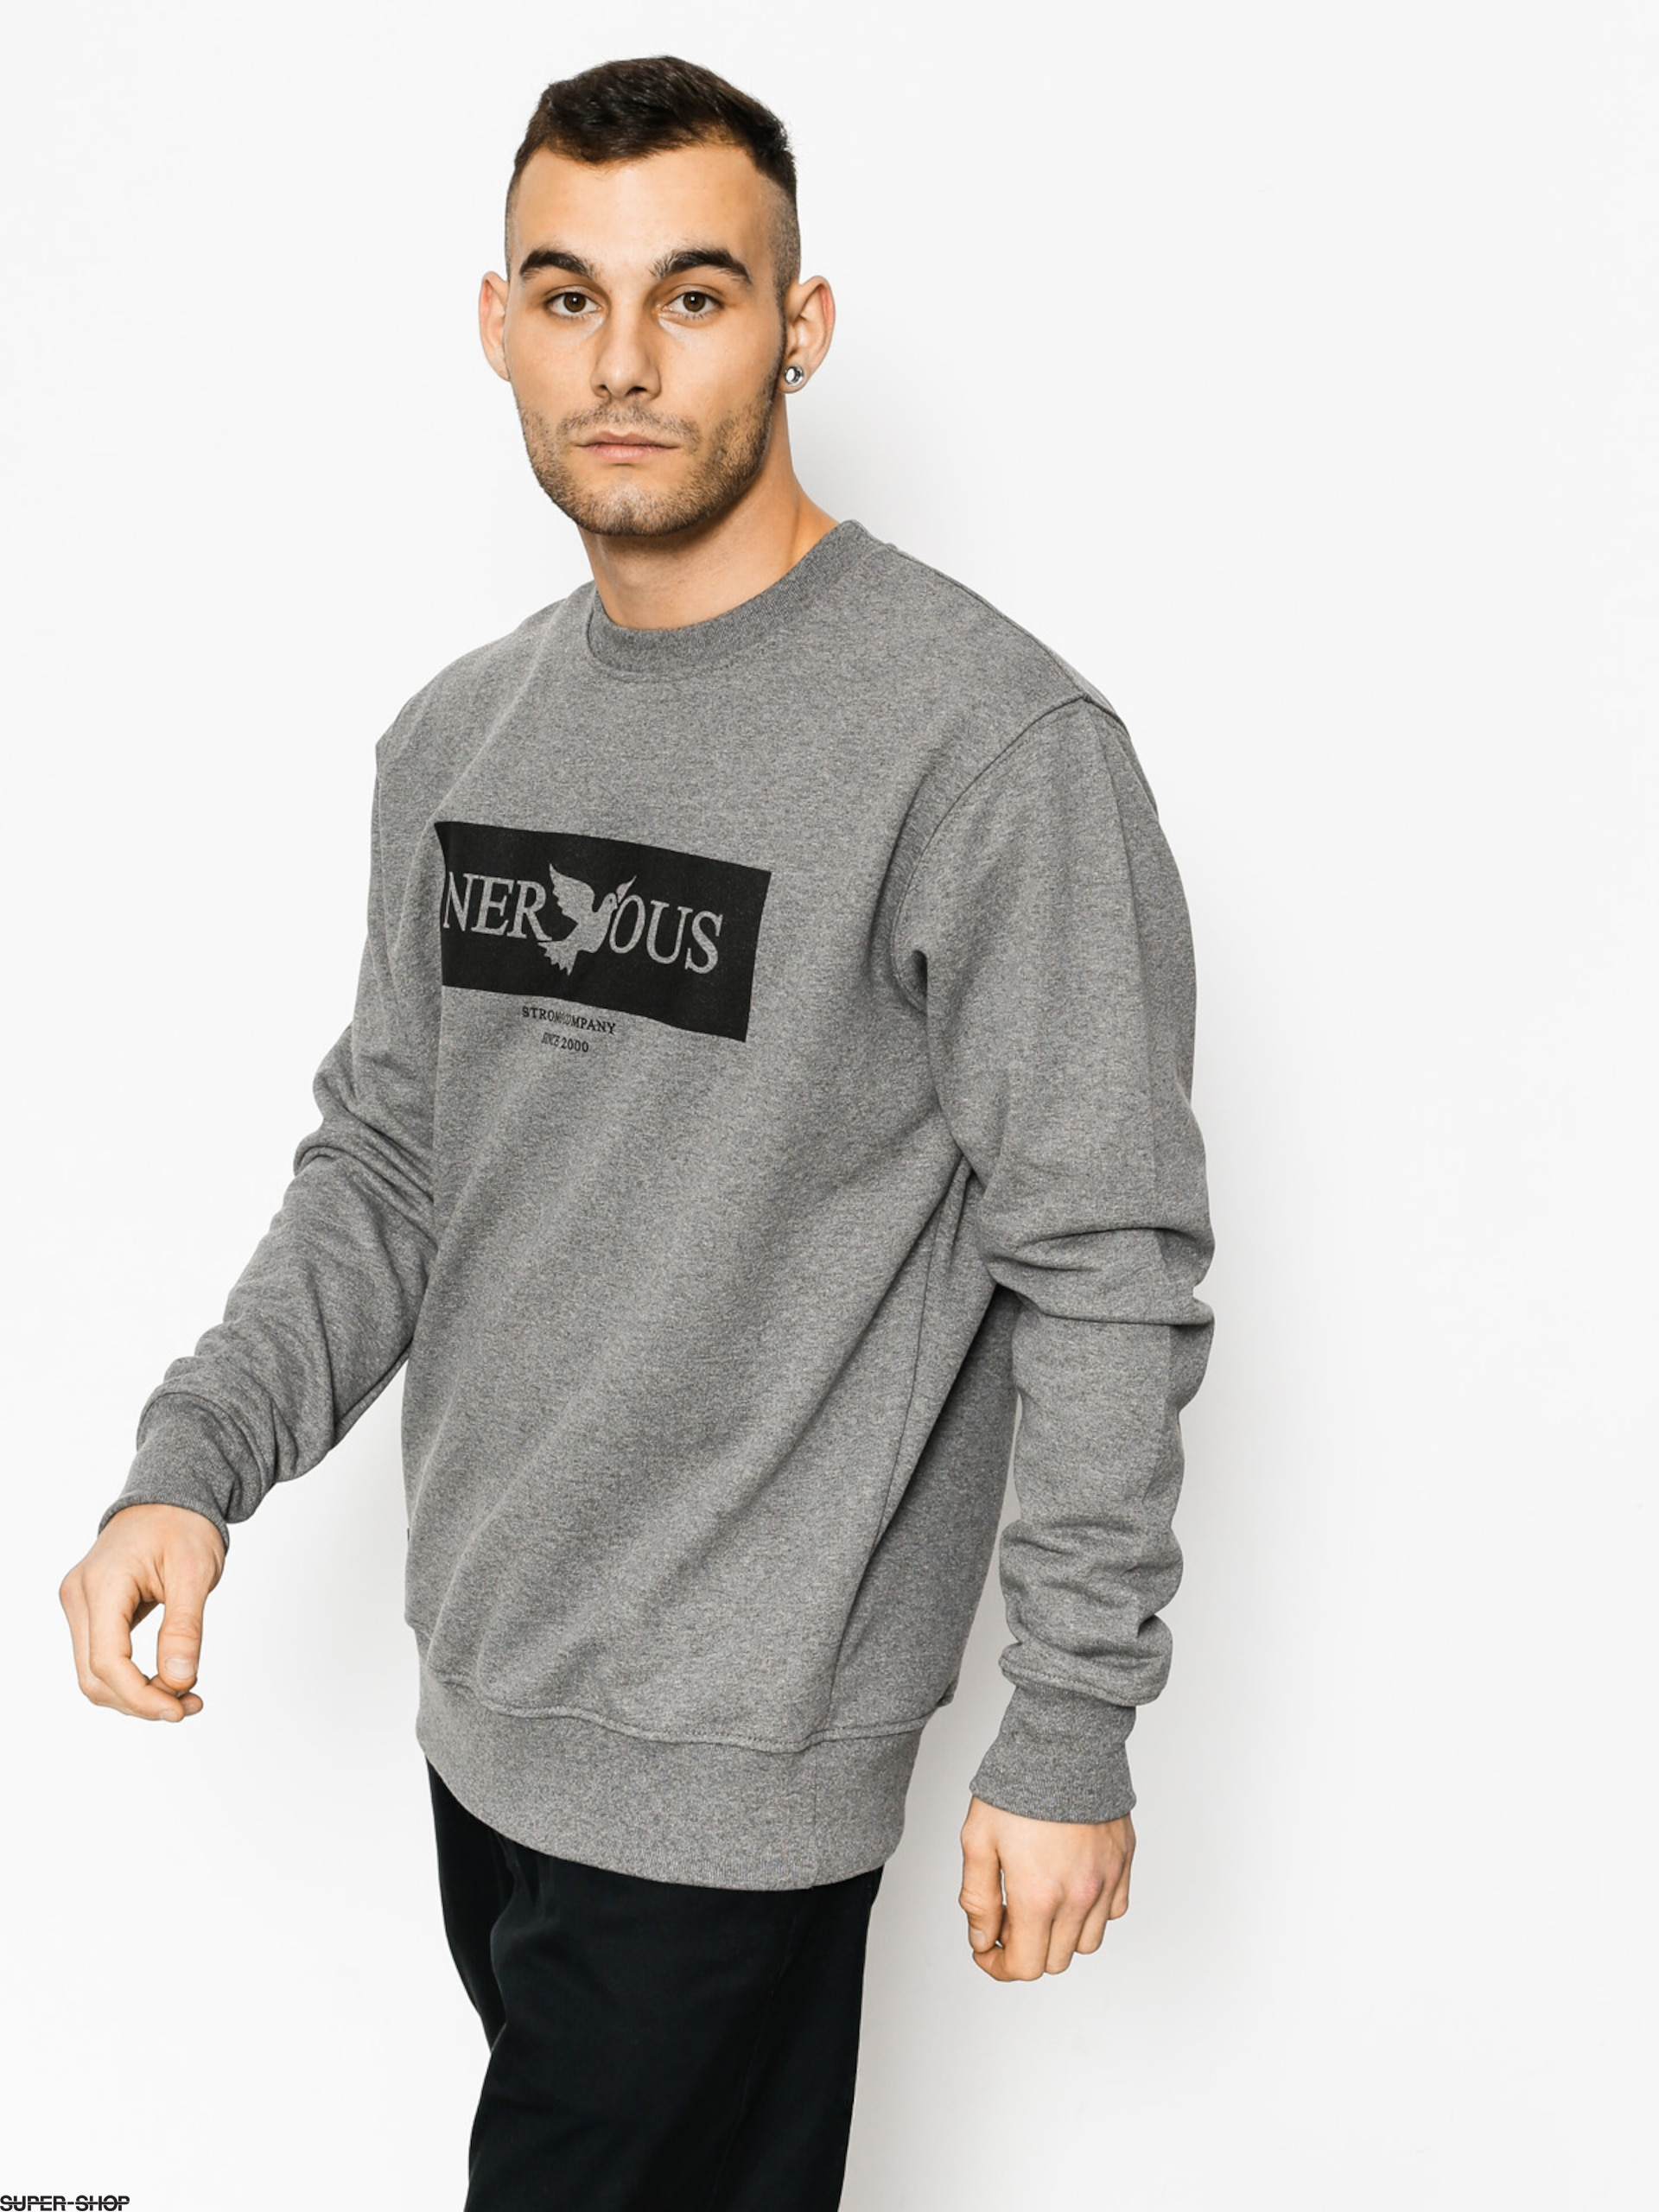 Nervous Sweatshirt Brand Box (grey)